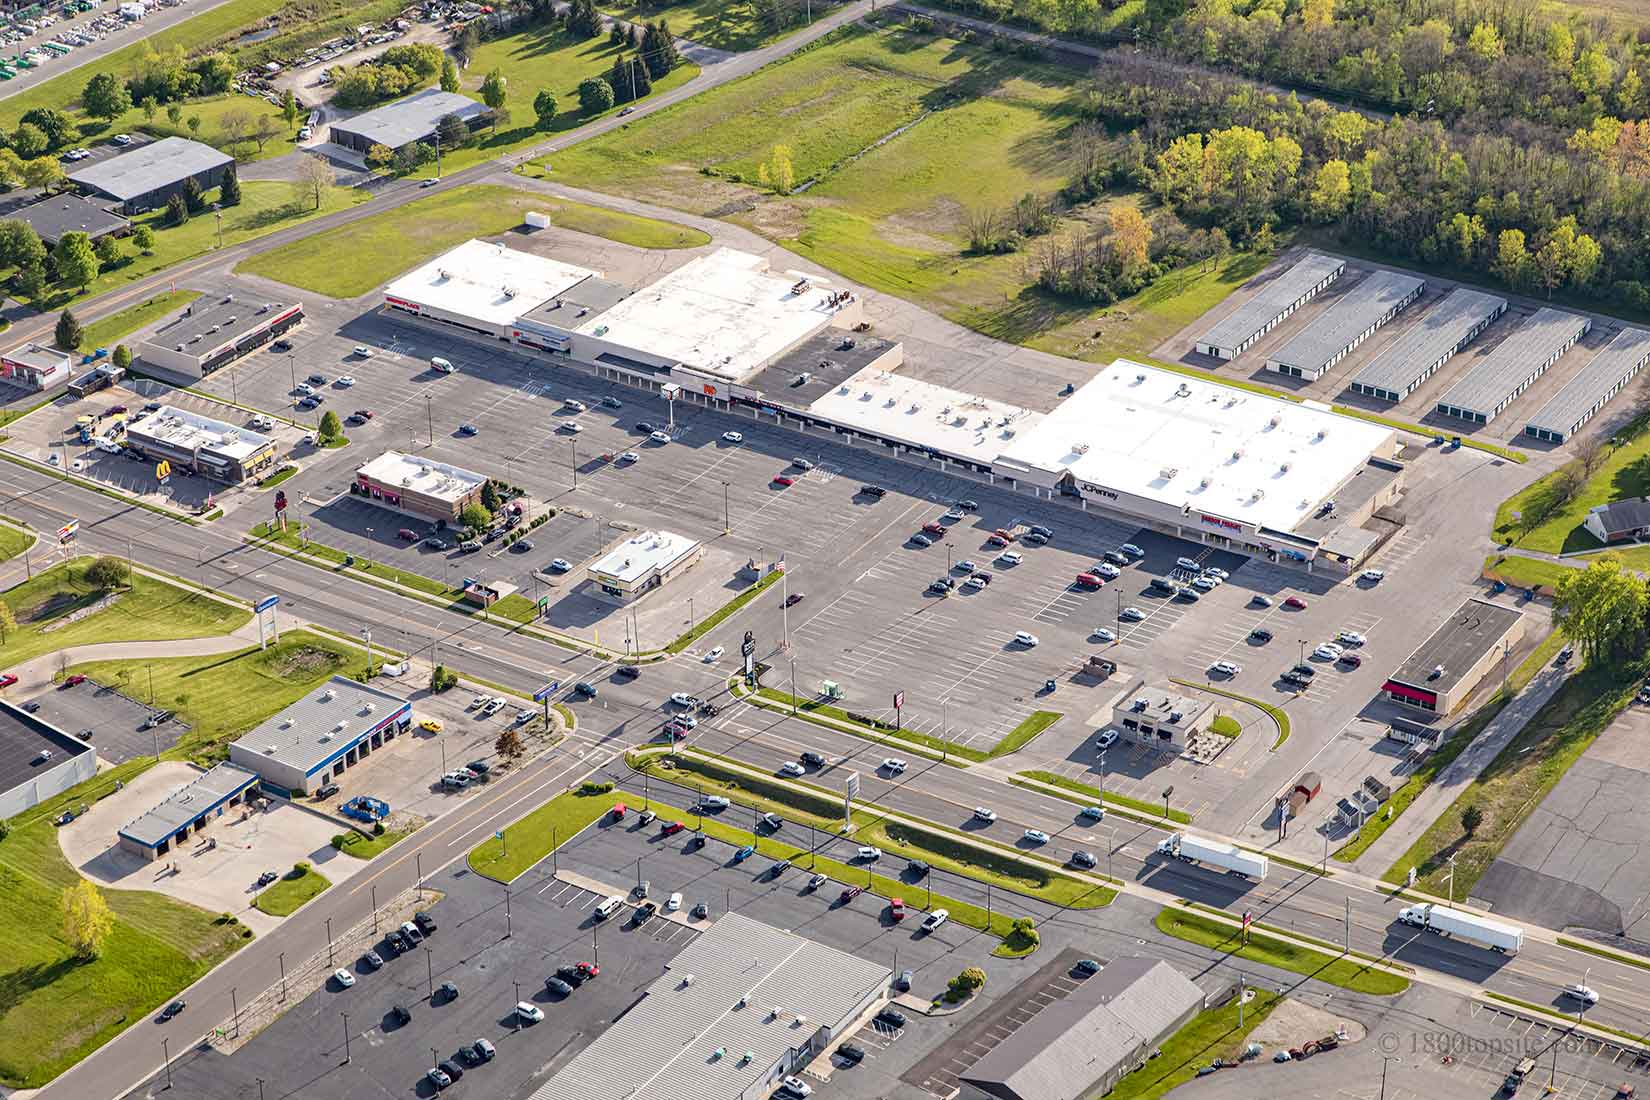 Aerial view of shopping center - Fountaine Plaza in Bellefontaine, Ohio